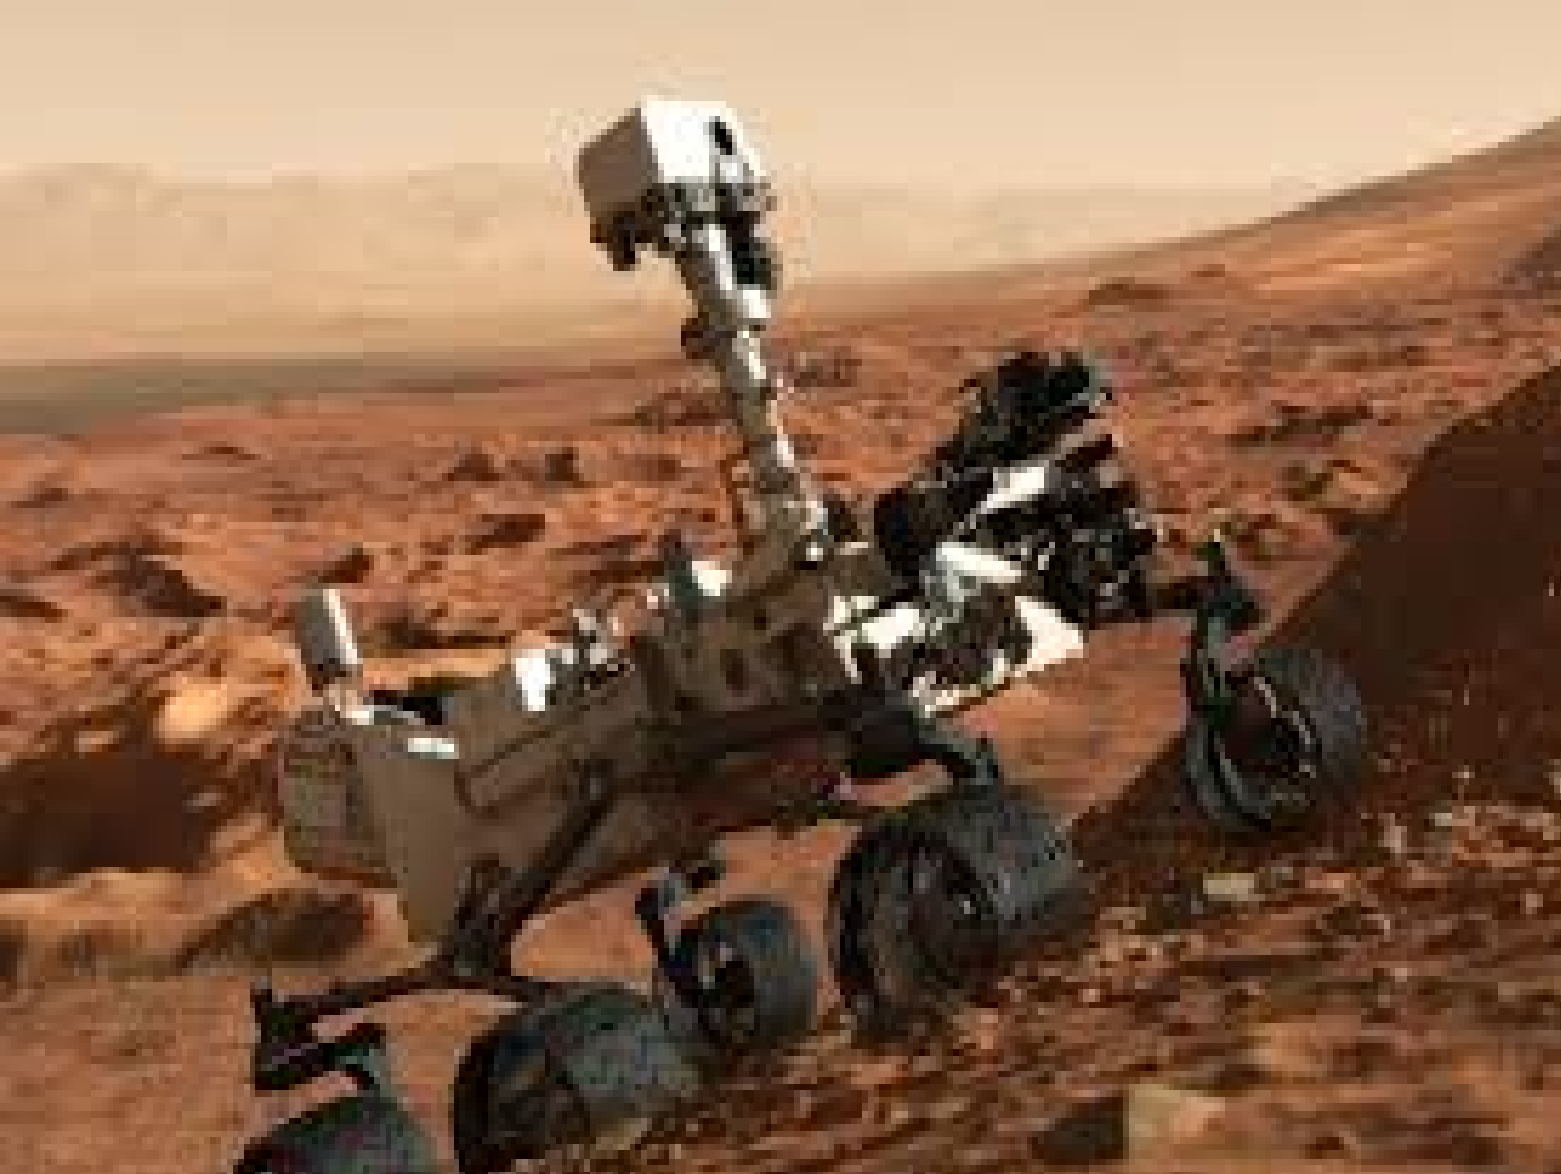 Mars Rover Facts - Mars Life Wiki